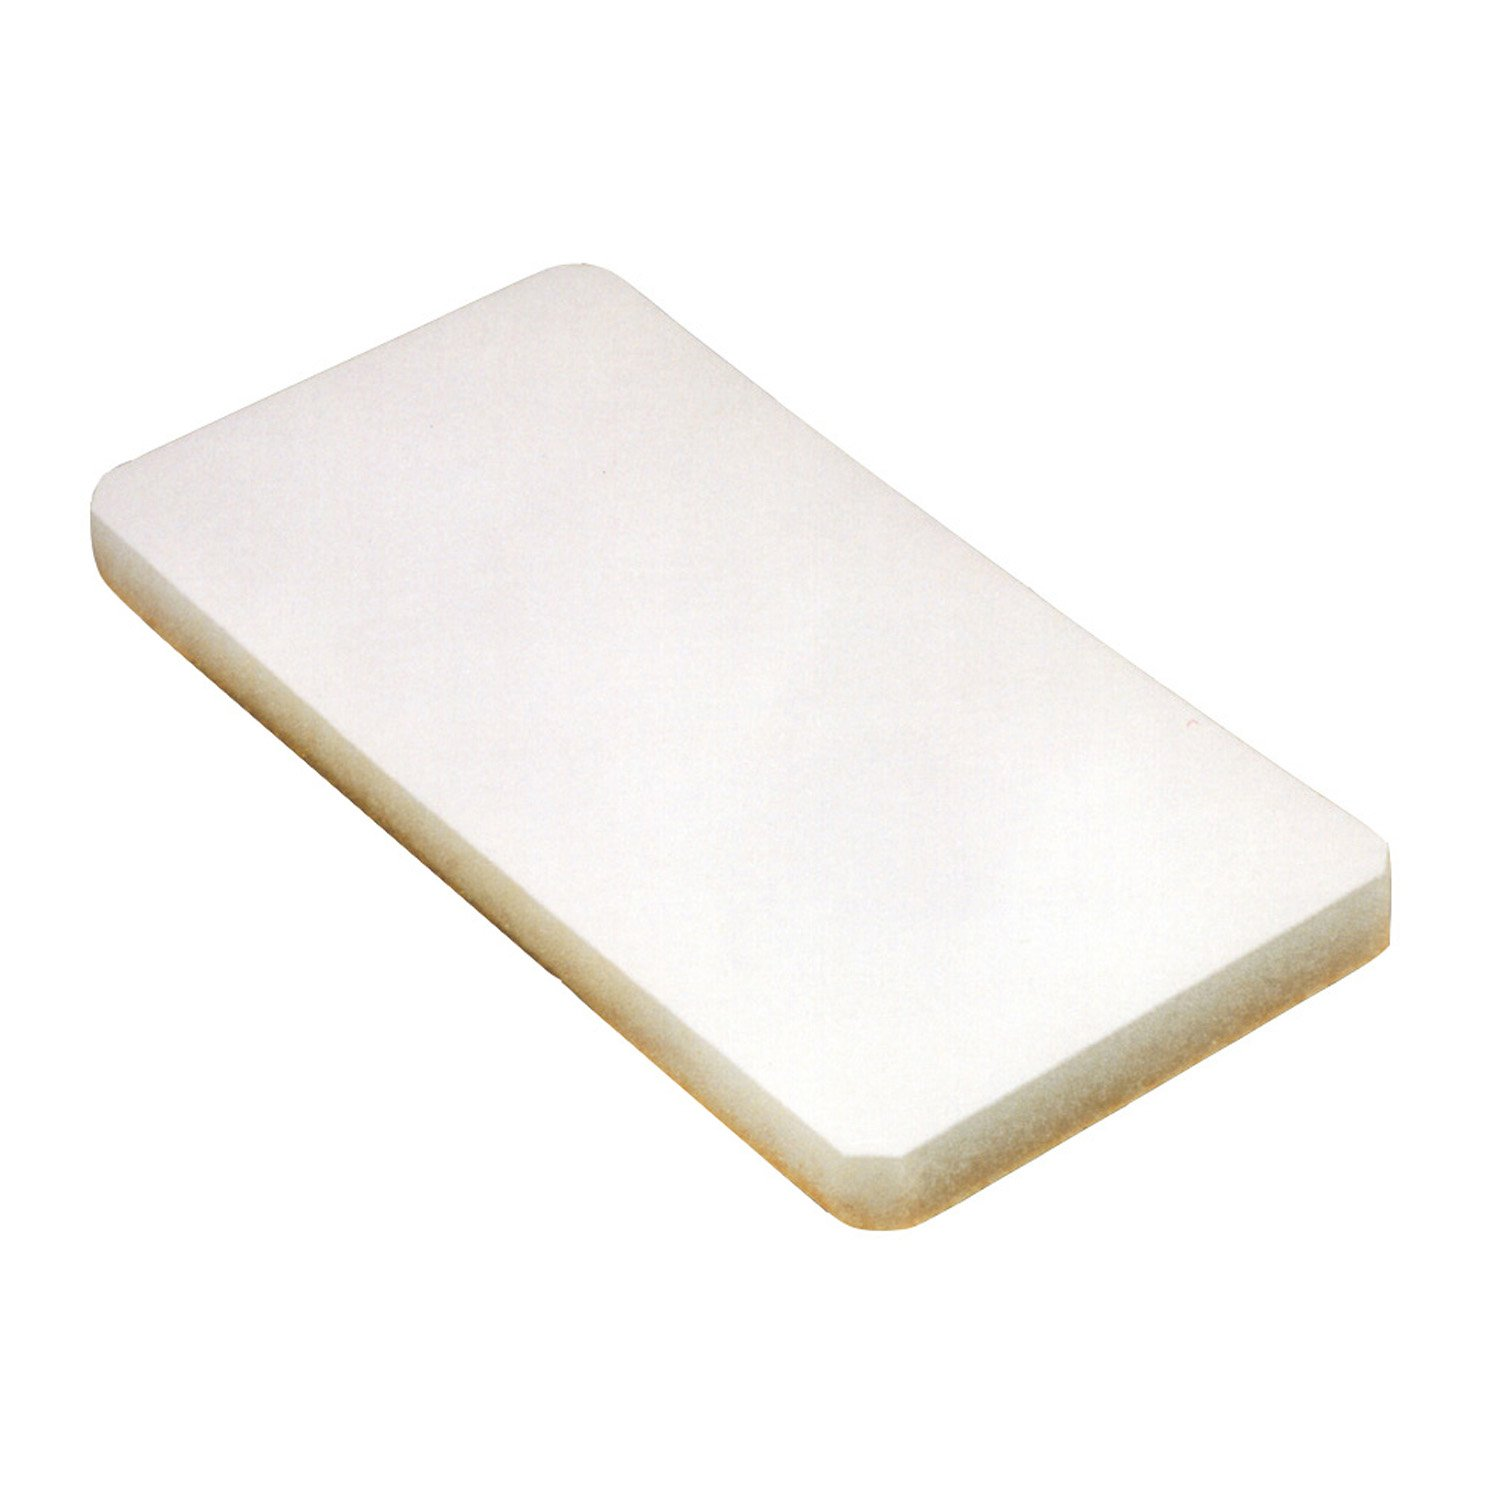 Contec VKST0003 VertiKlean Disposable Cleanroom Sponge, Single-Ply, Sterile Ready-To-Use, 5'' x 5'' x .62'' Size (Case of 120)